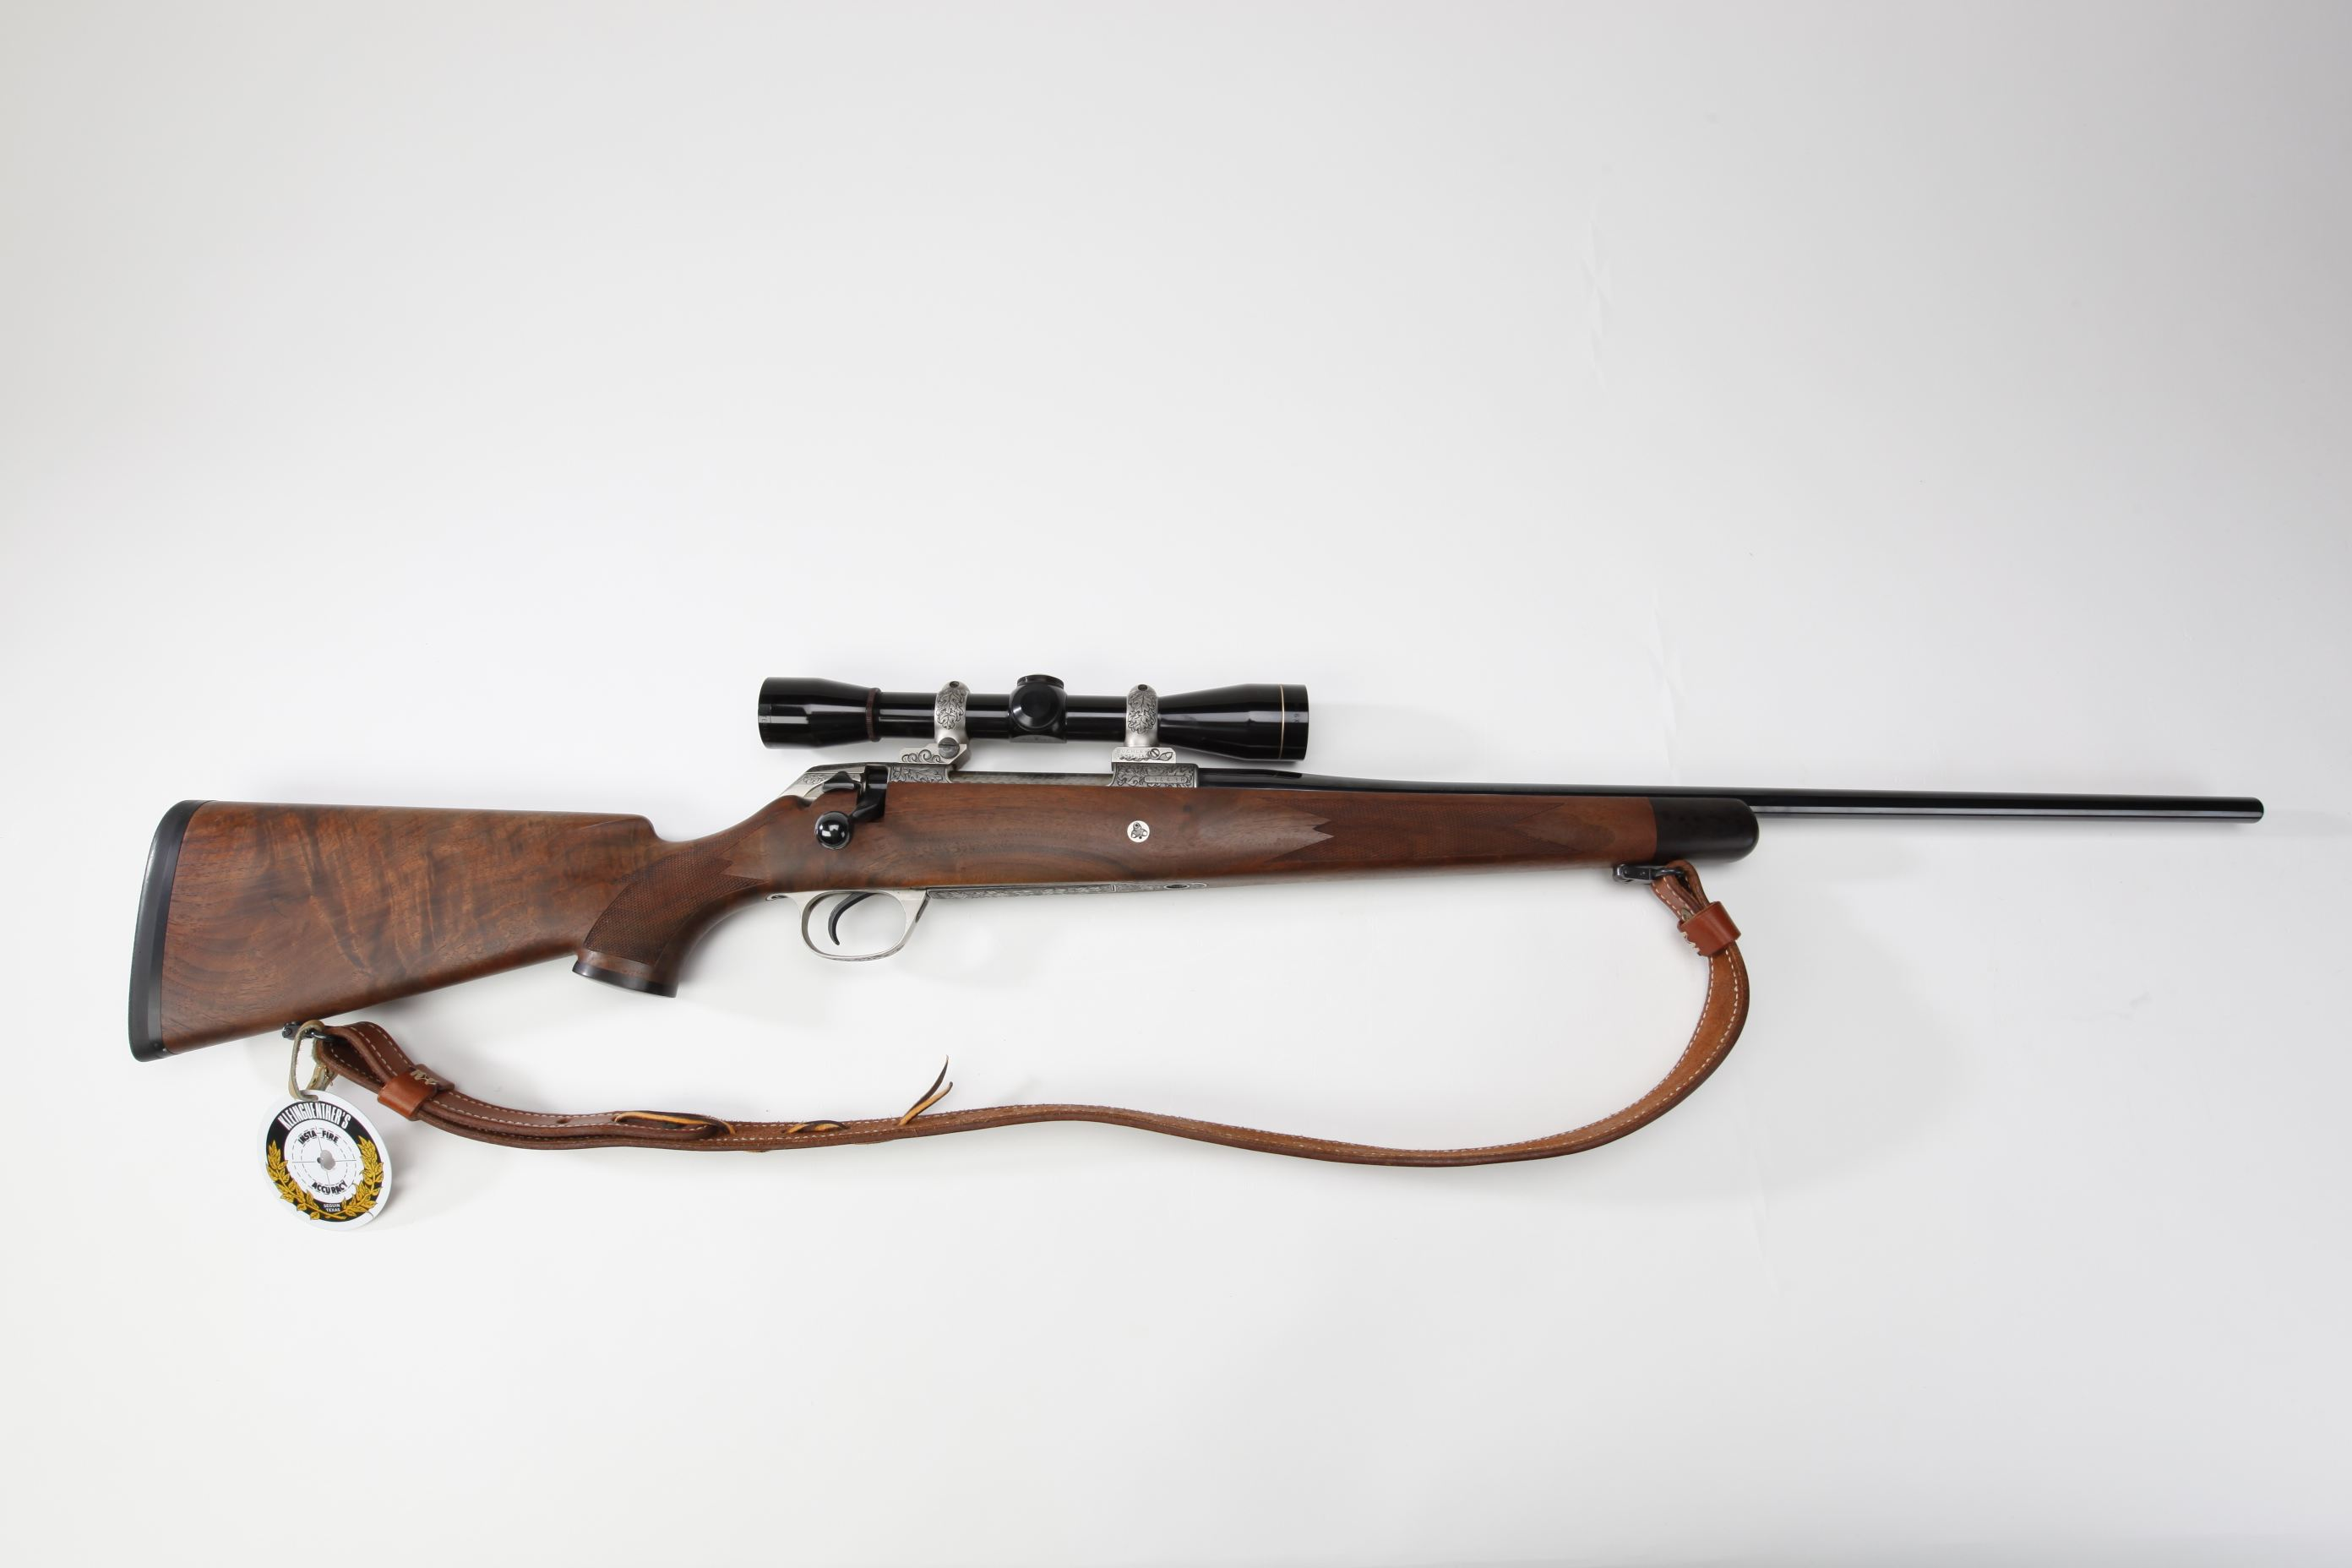 Kelingunther K15 Bolt Action Rifle w scope